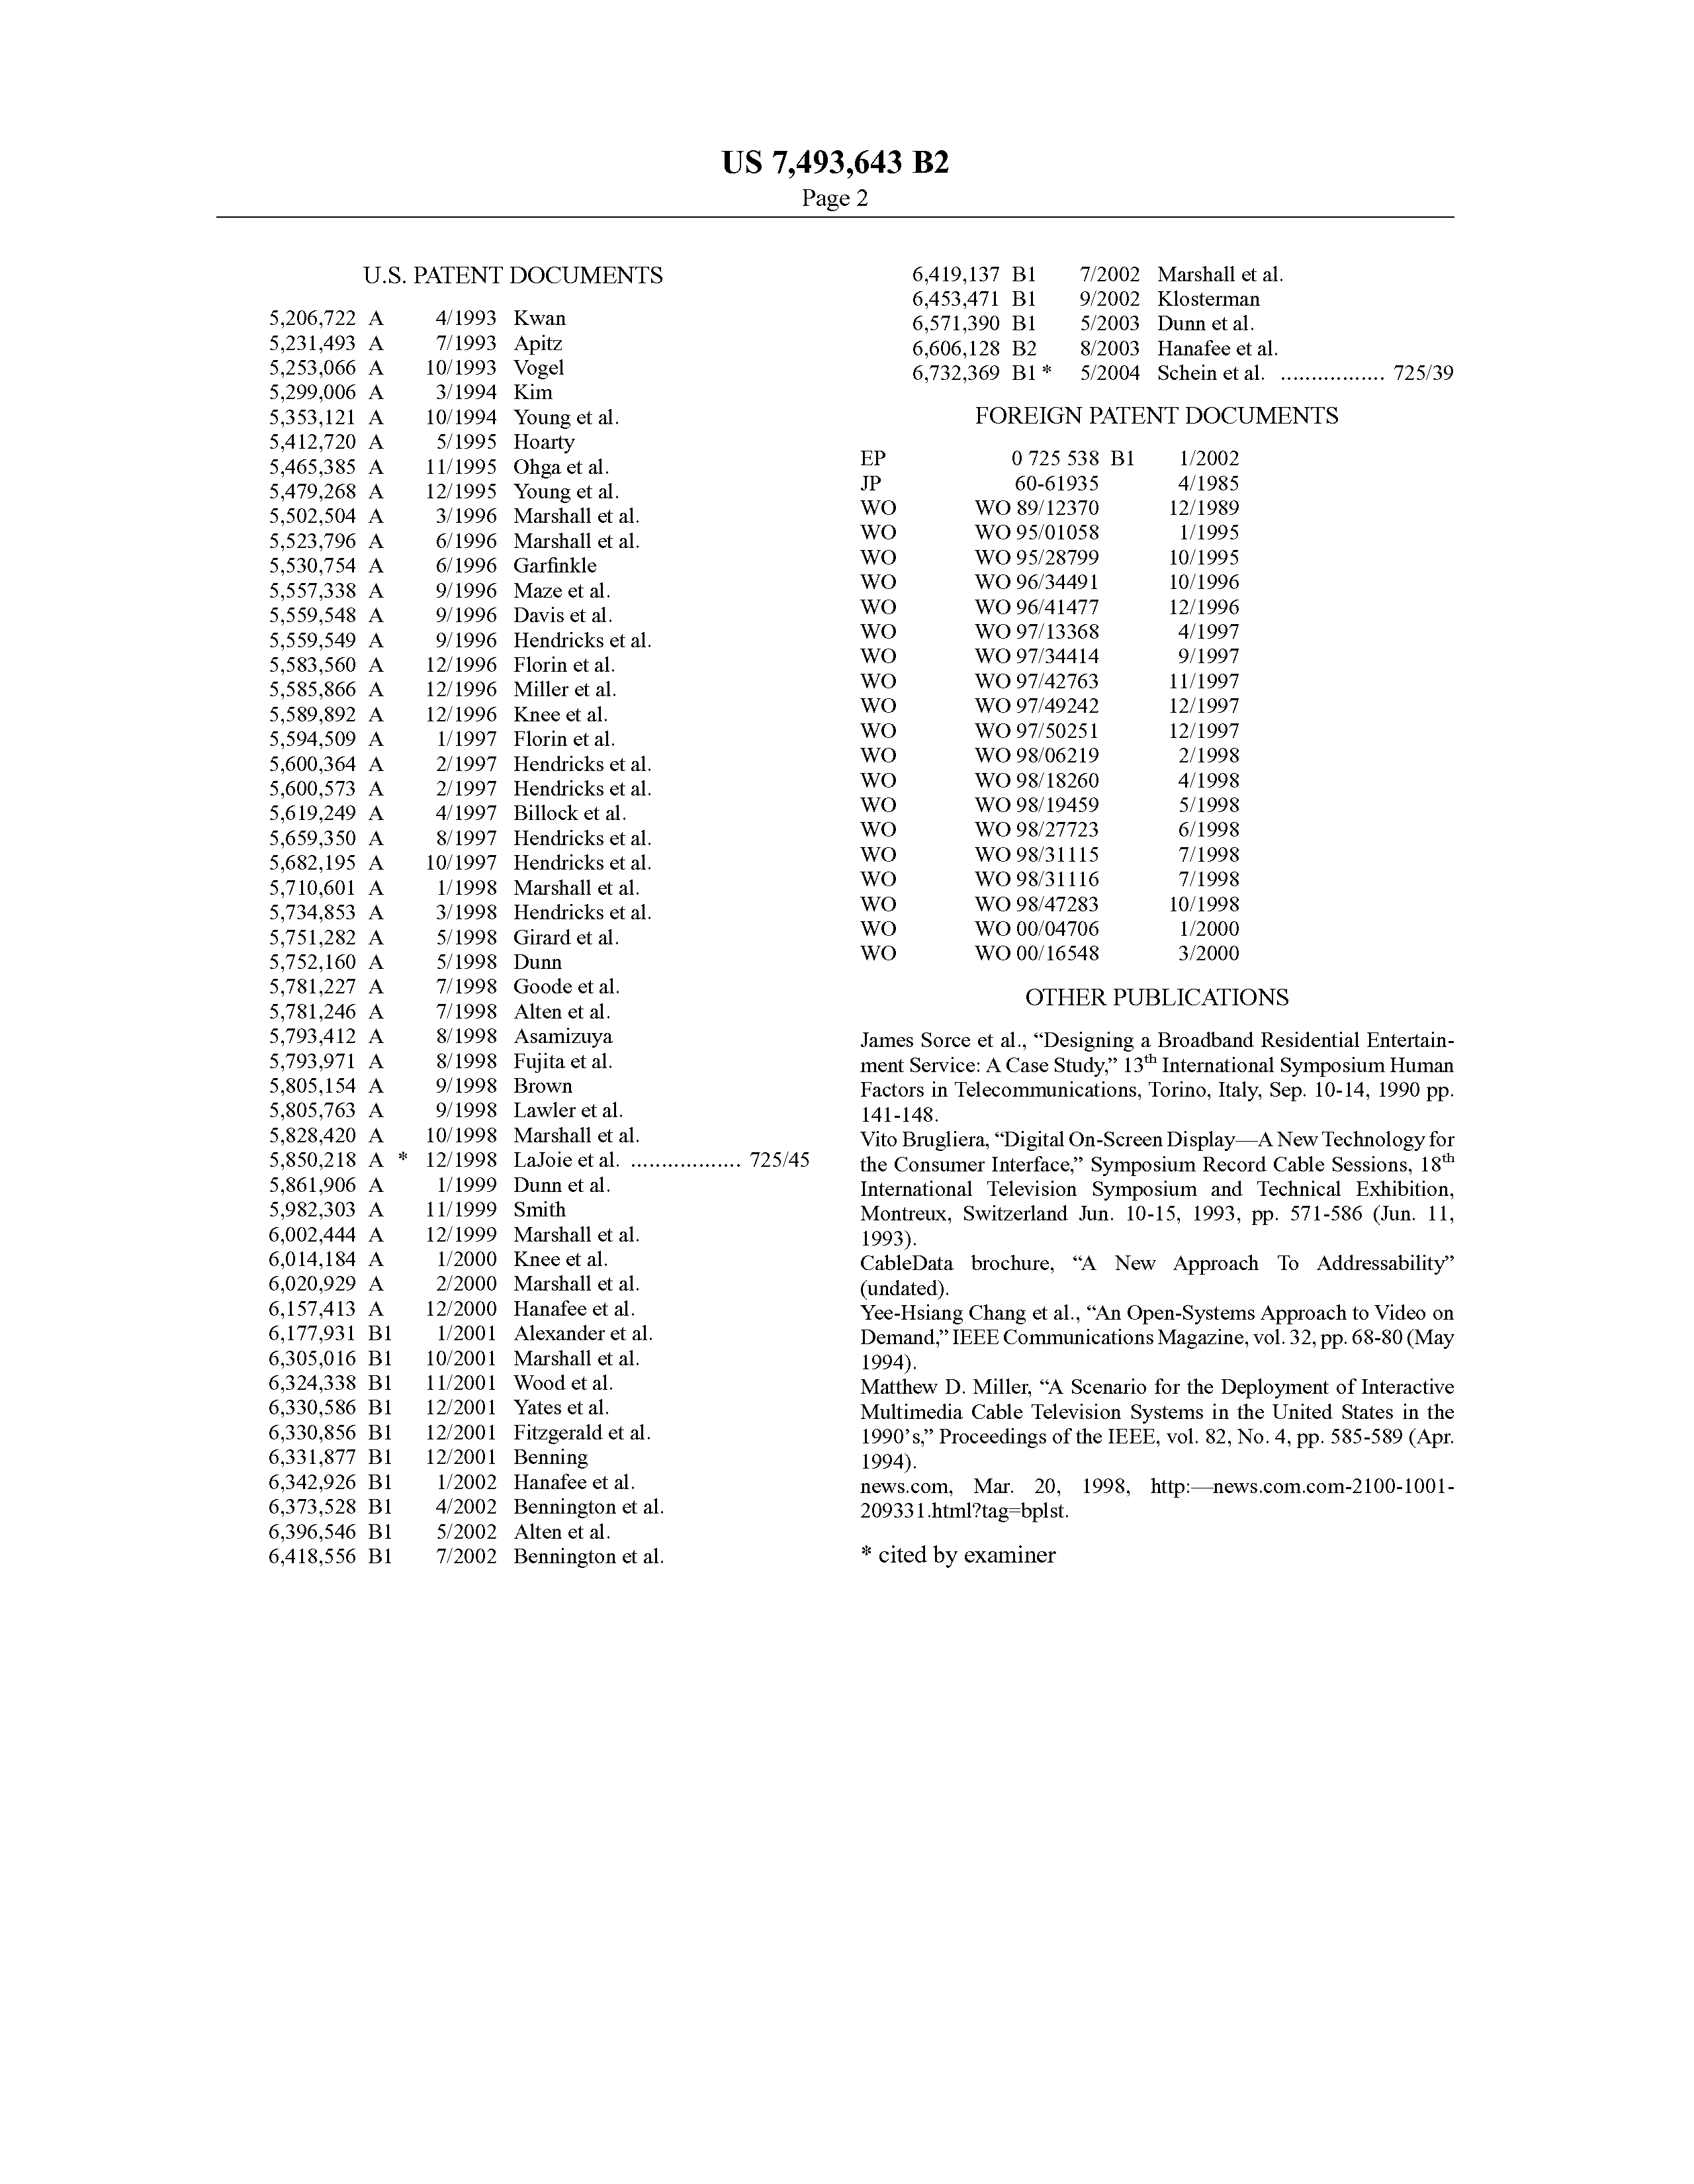 US 7493643 B2 - Program Guide System With Video-on-demand